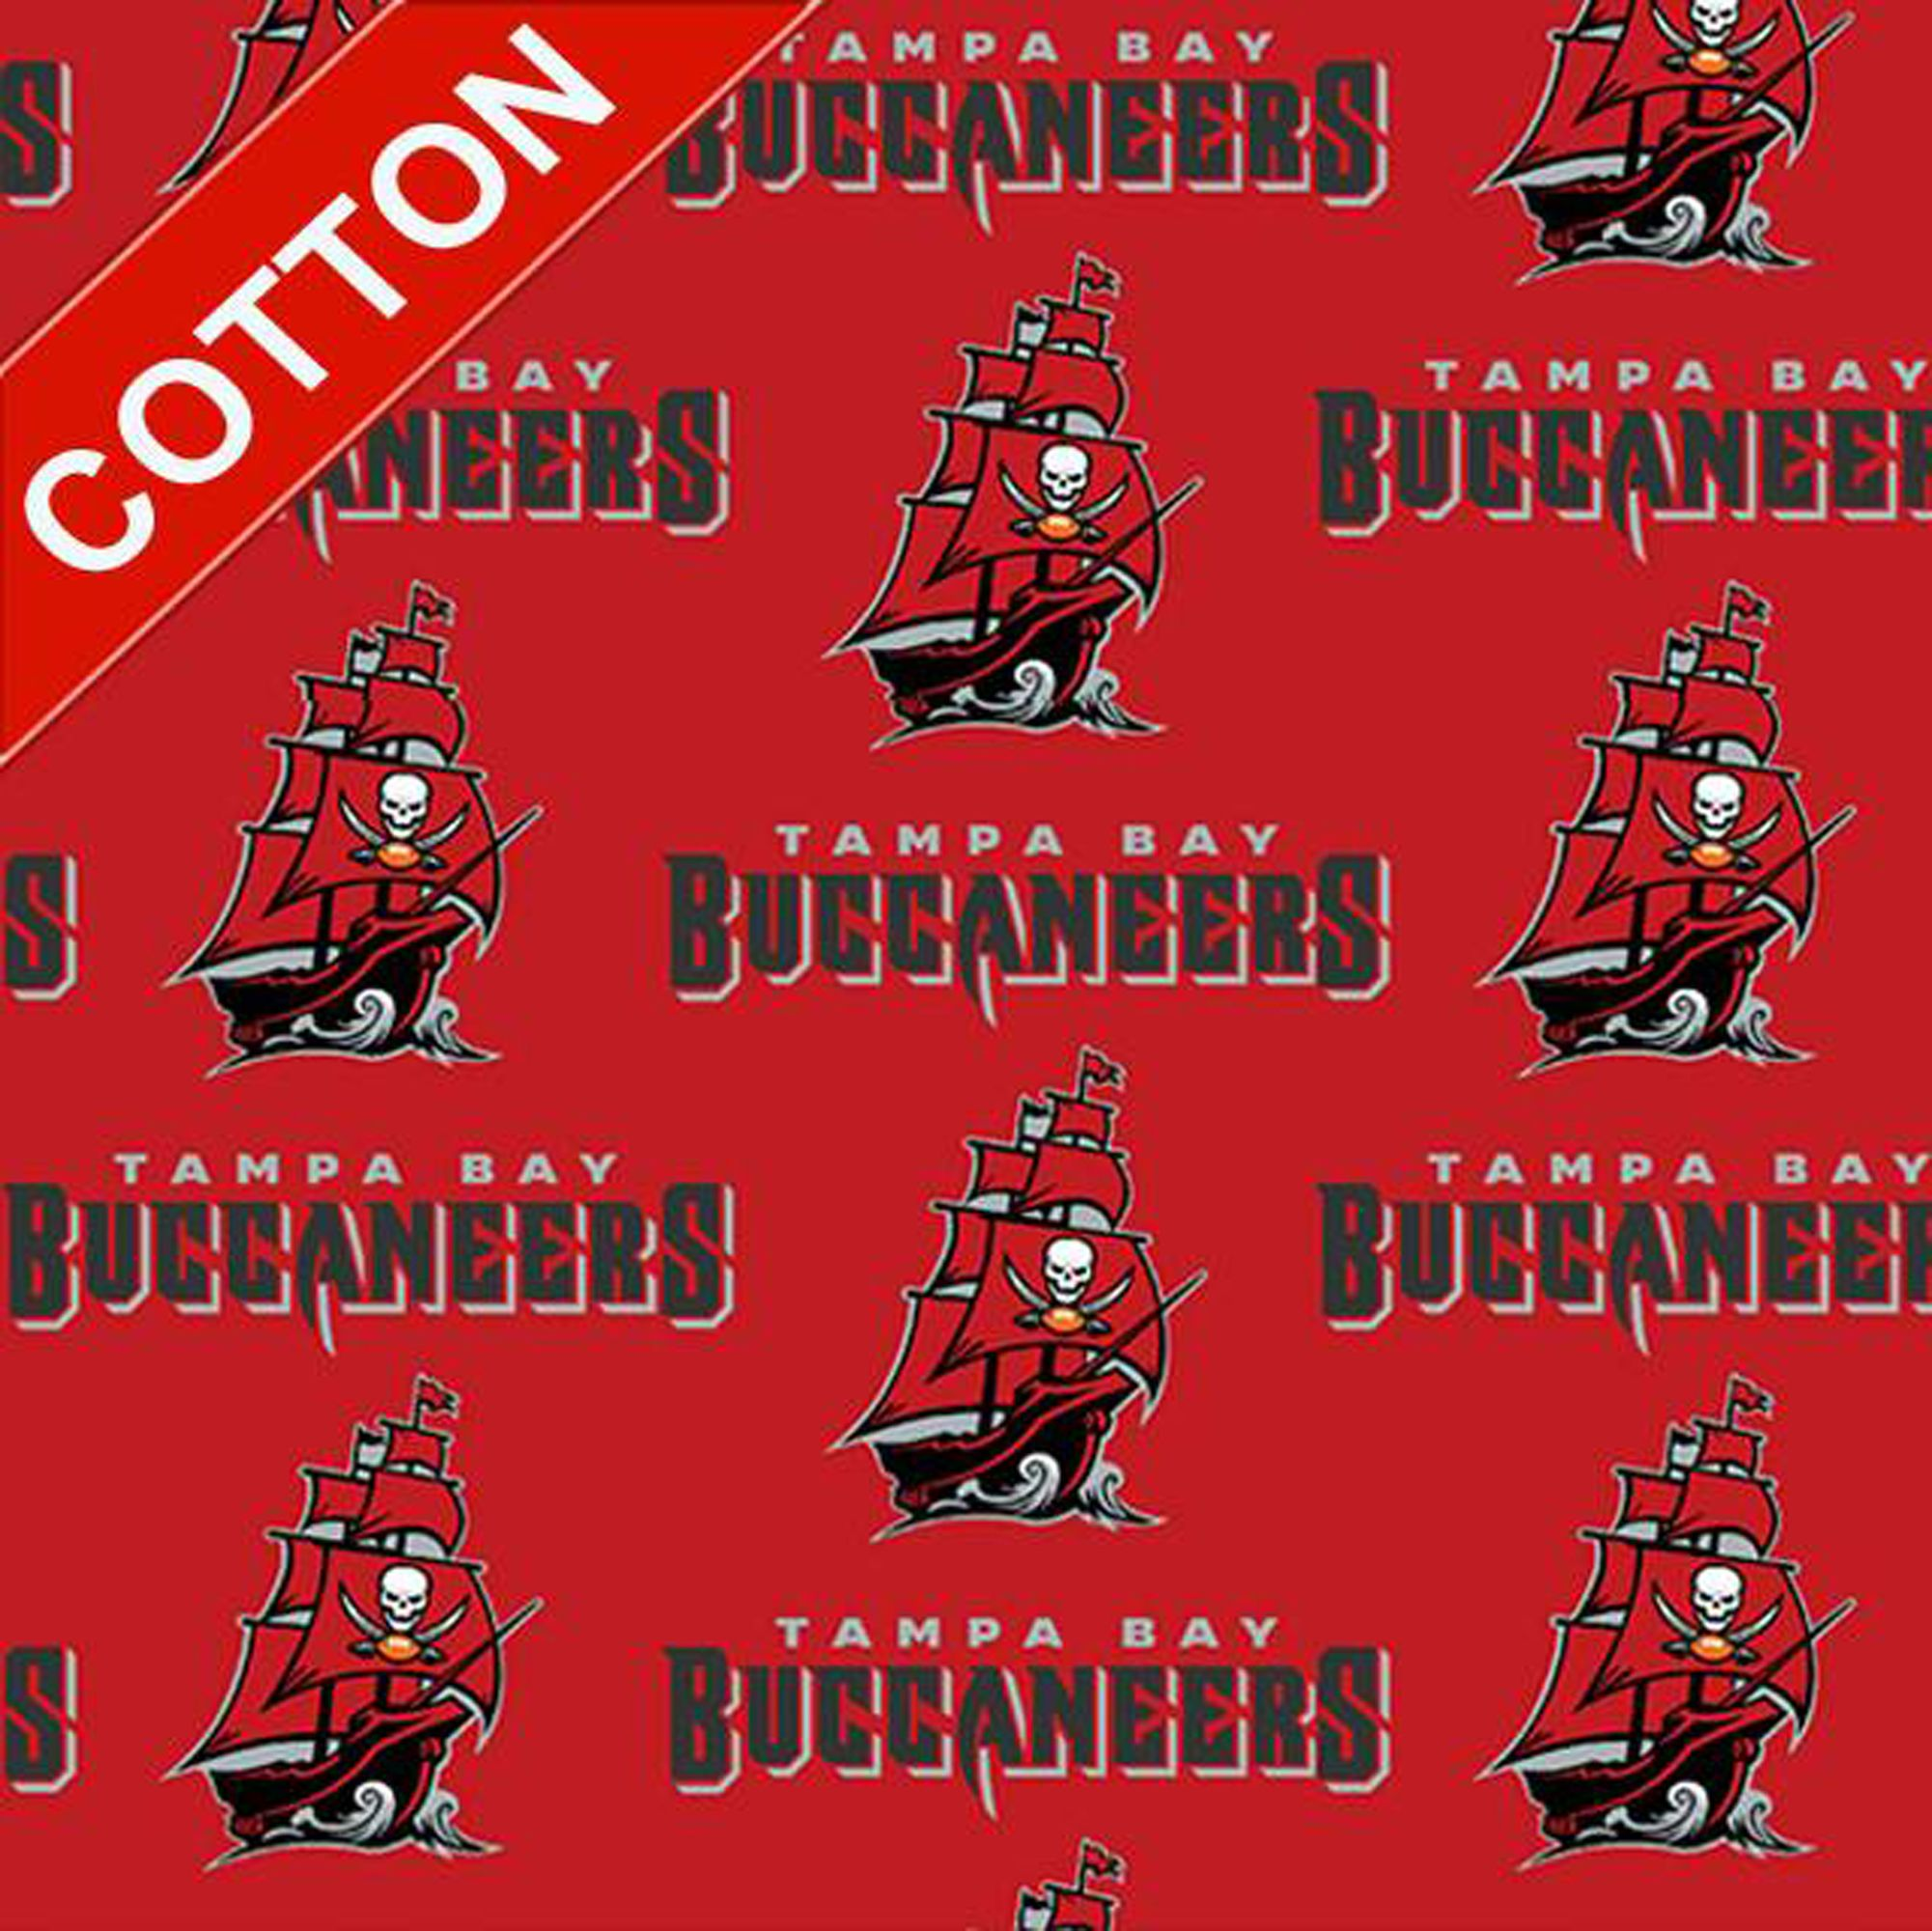 Tampa Bay Buccaneers Cotton Fabric Nfl Football Team Cotton Fabric In 2020 Tampa Bay Buccaneers Tampa Bay Buccaneers Football Buccaneers Football